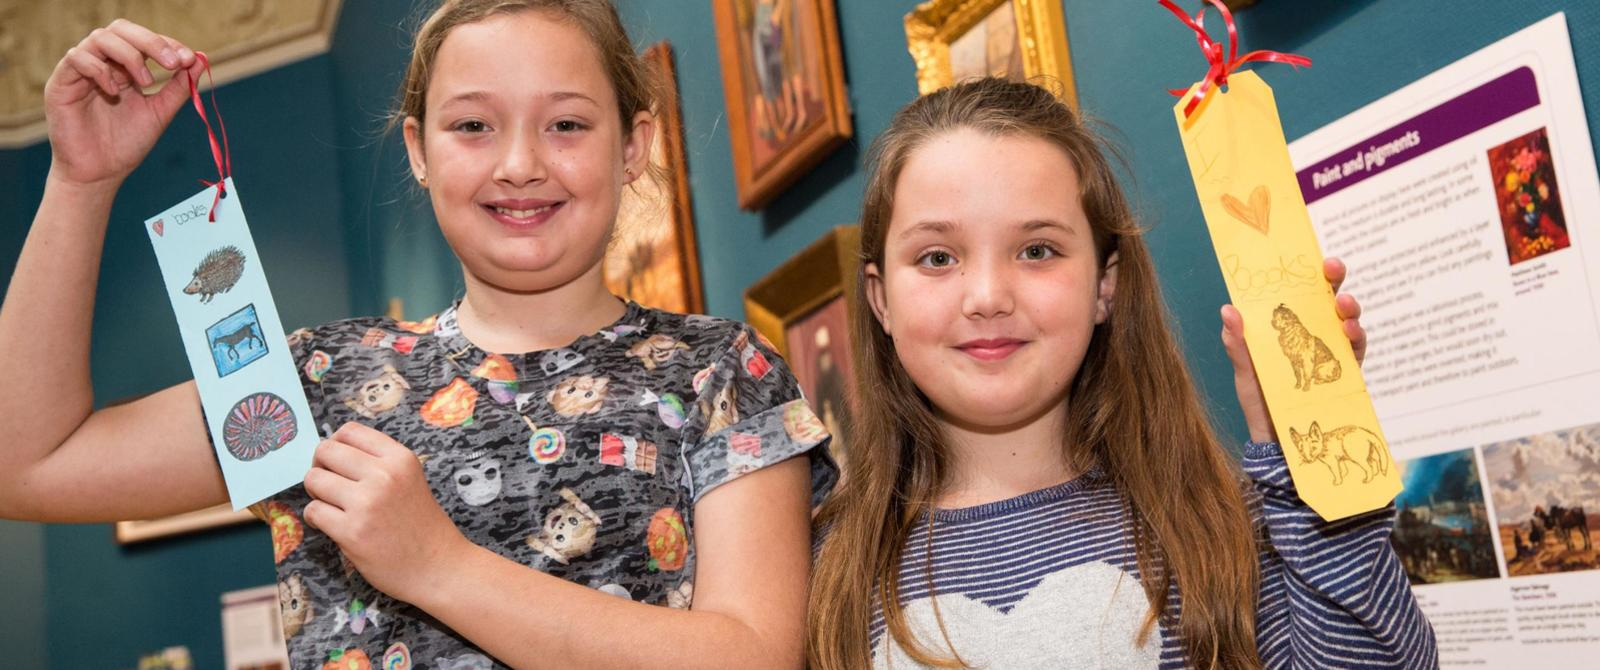 Image: Children with bookmarks at the Victoria Art Gallery